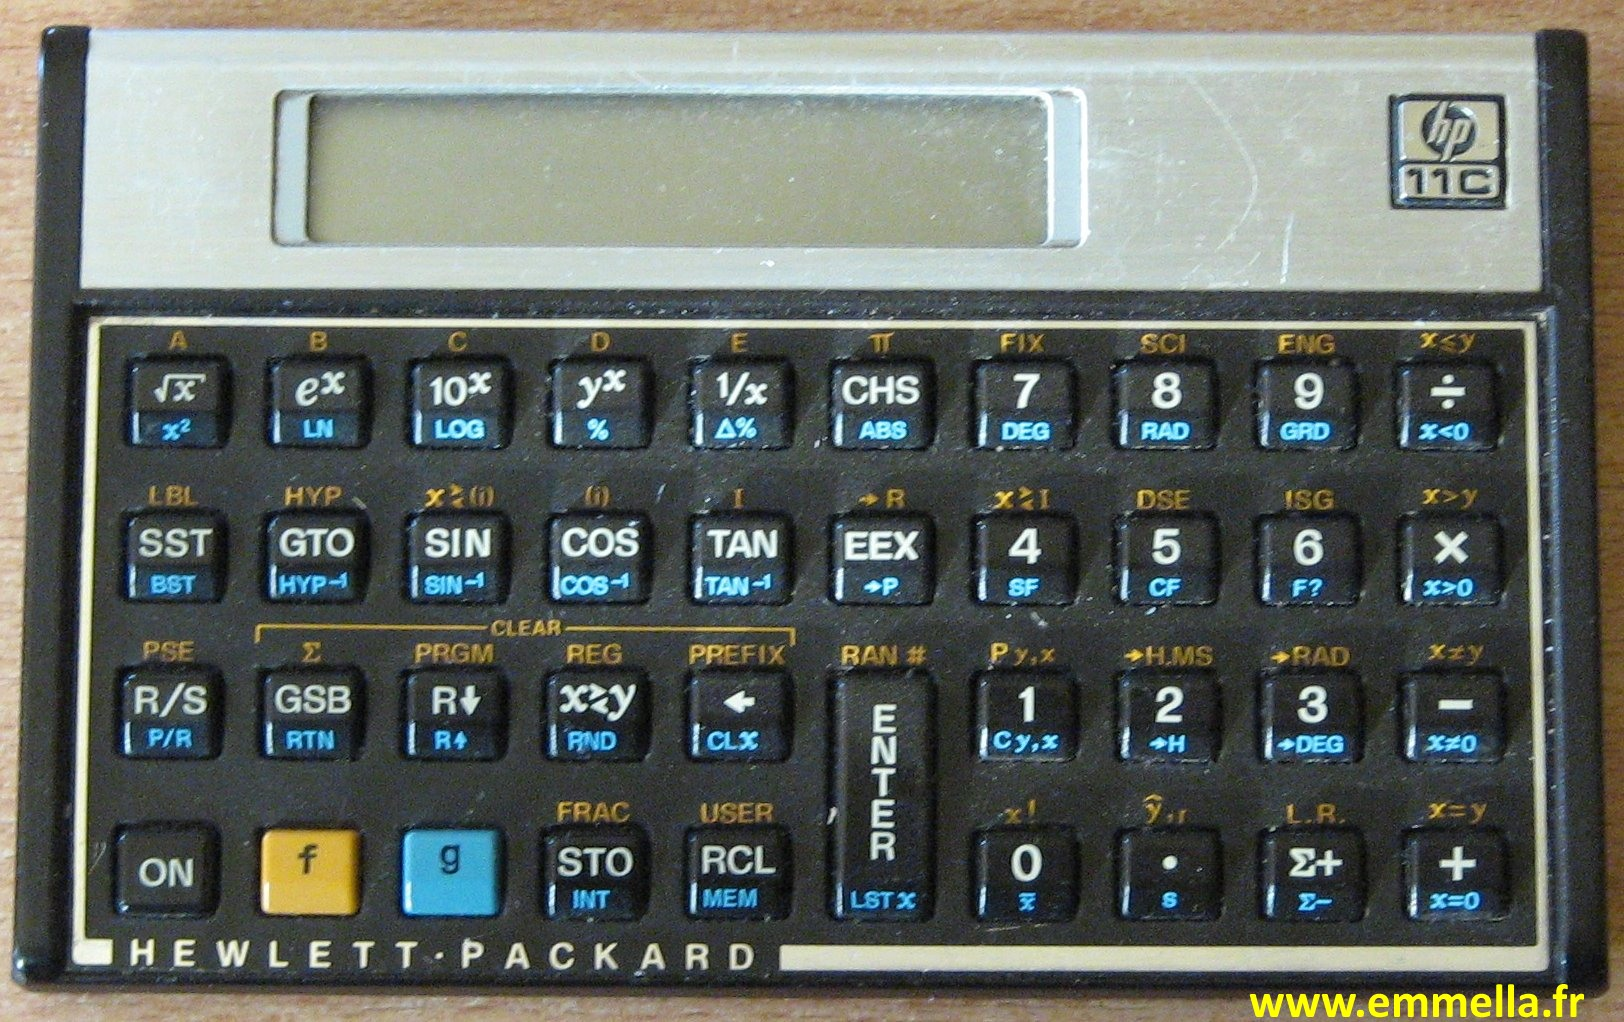 Hewlett Packard HP 11C